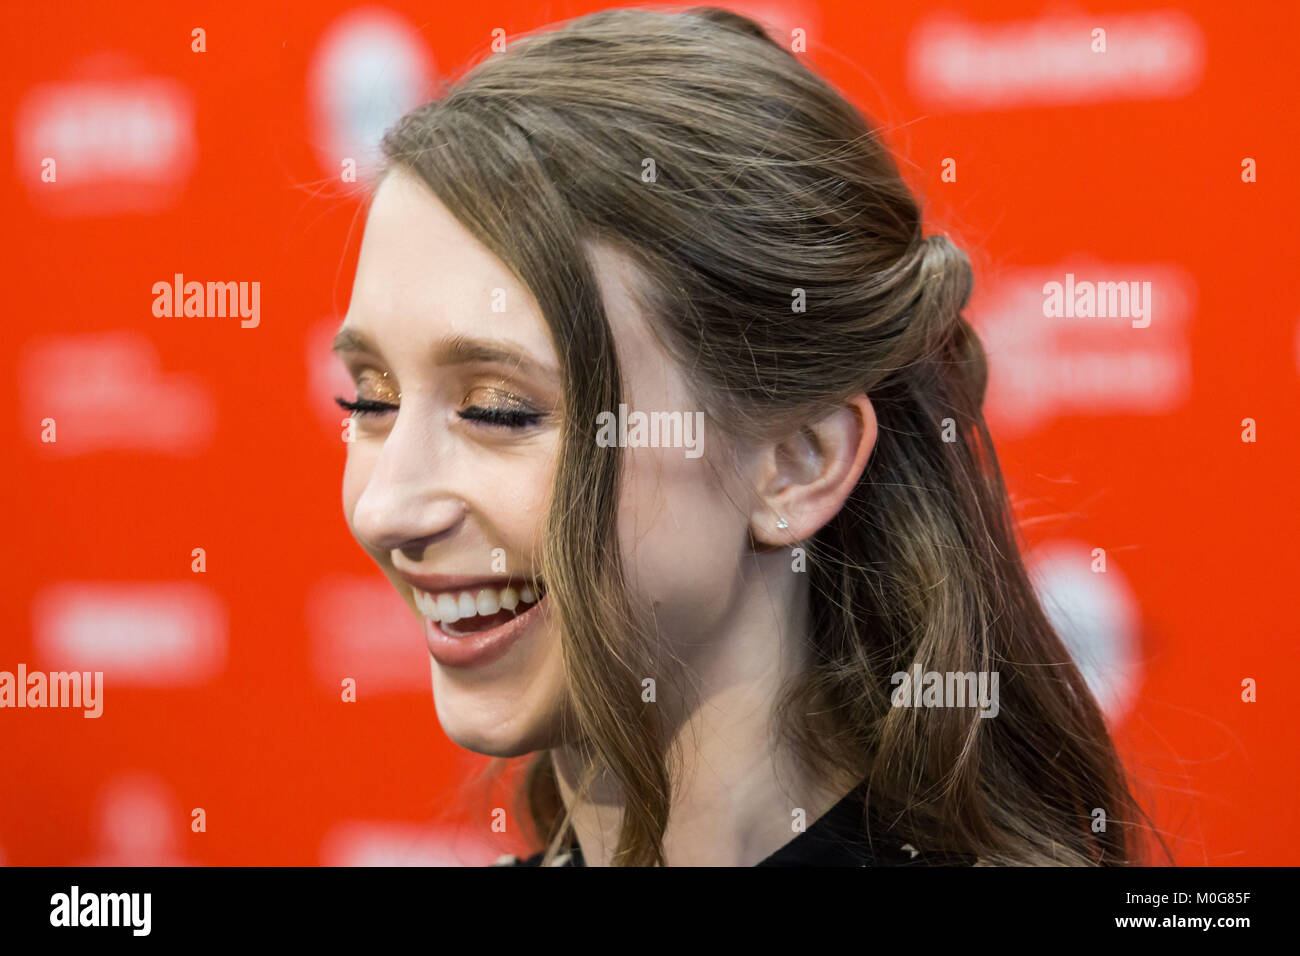 Actress Taissa Farmiga attends the 'What They Had' Premiere during the 2018 Sundance Film Festival at Eccles - Stock Image